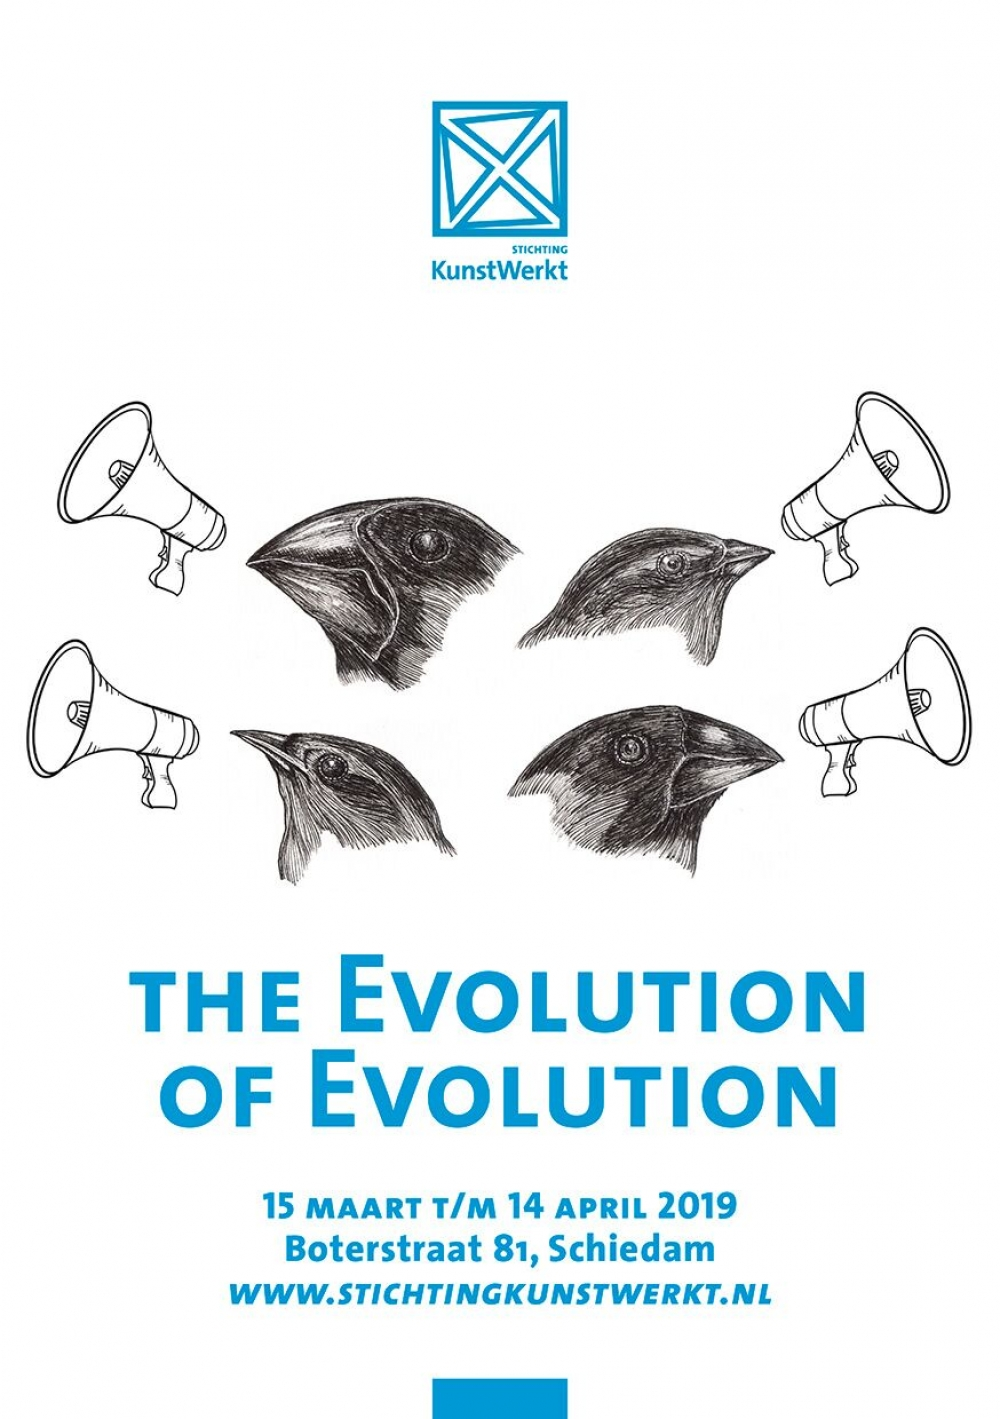 The evolution of evolution in Ruimte in Beweging